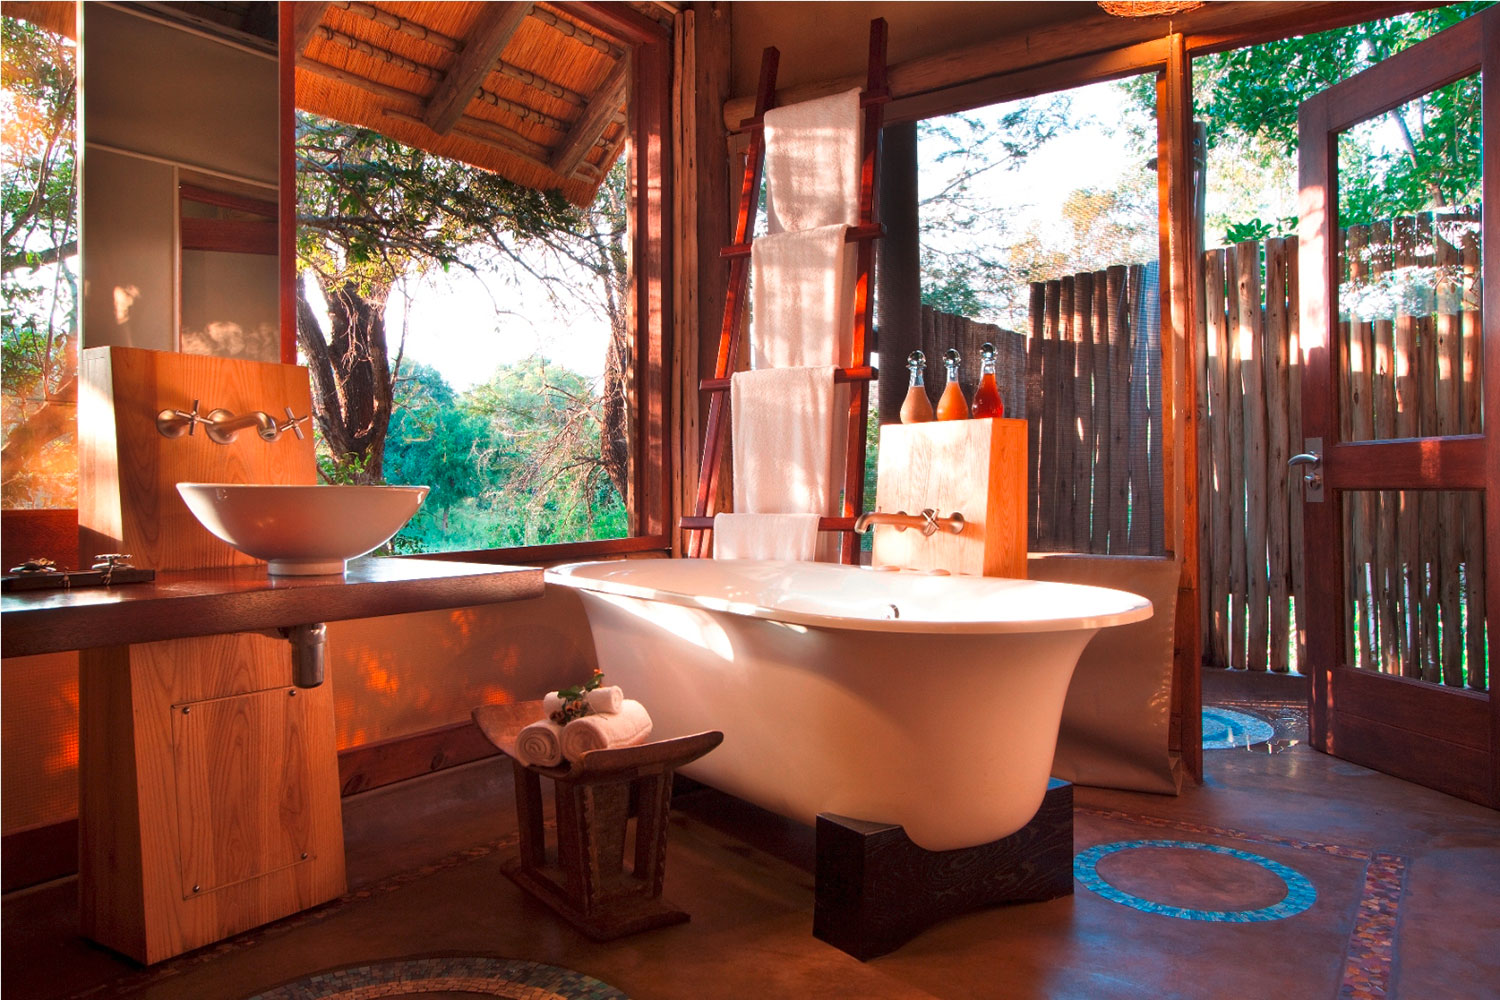 Badezimmer in der Rhino Post Safari Lodge im Krüger Nationalpark - World of TUI Berlin Reisebericht